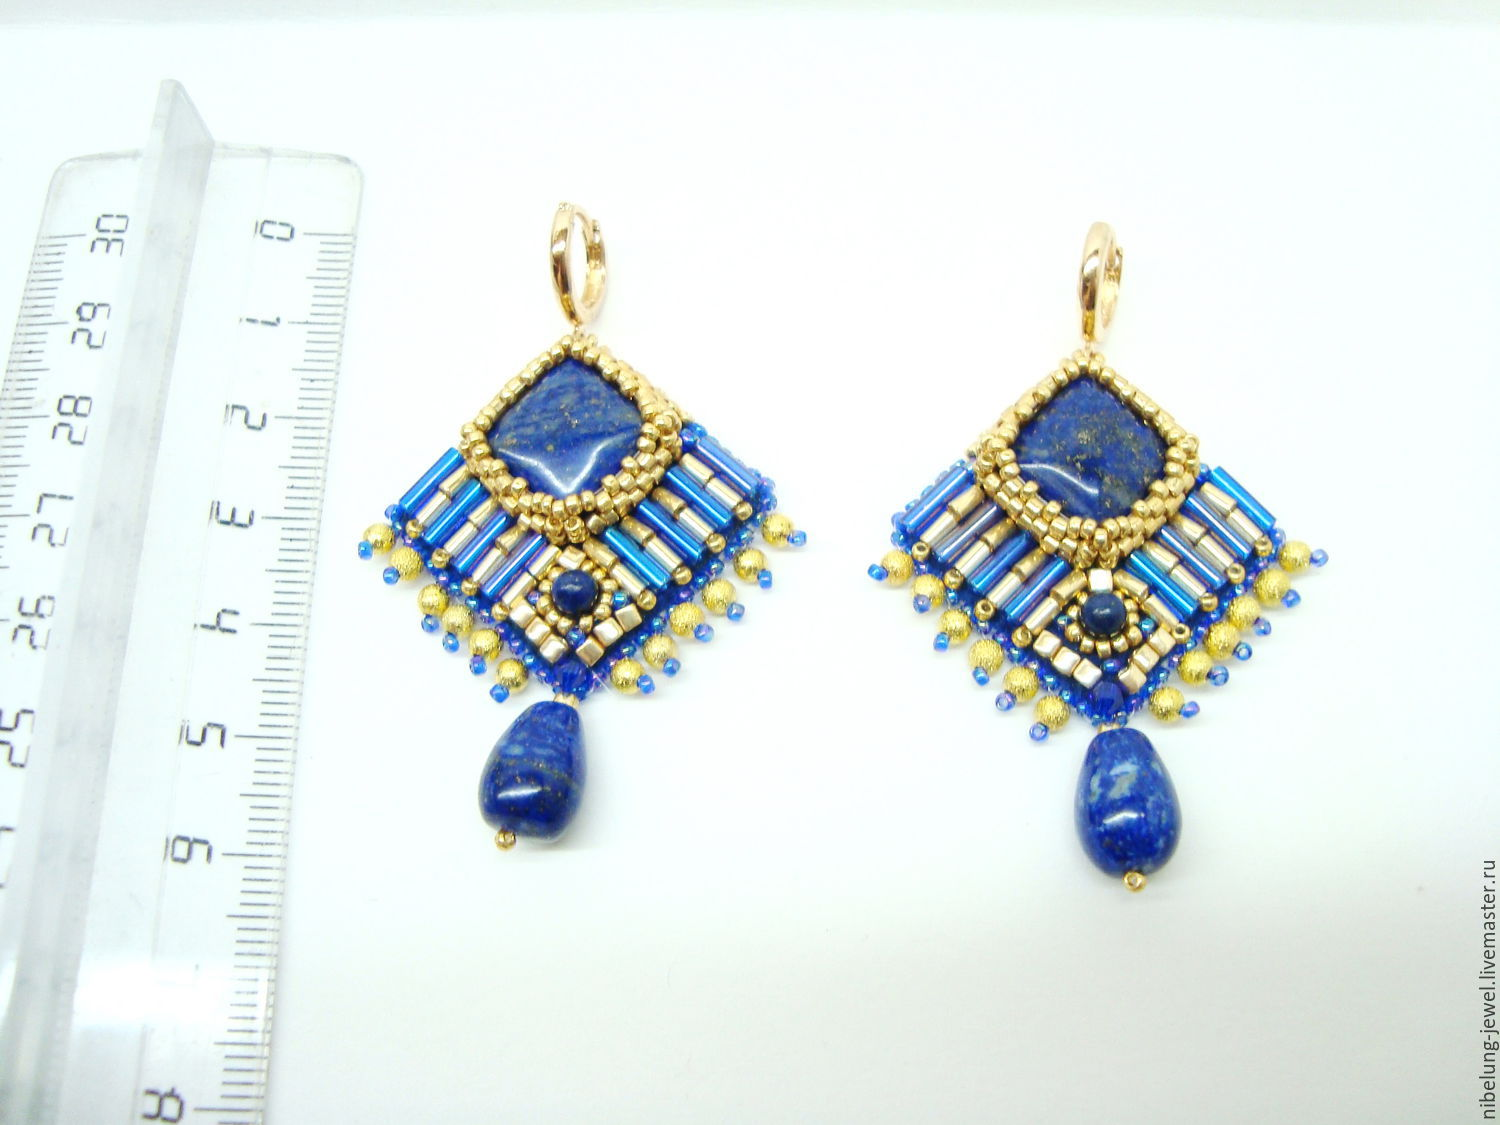 aur lapis lazuli bidermann earrings francoise en fran oise lie